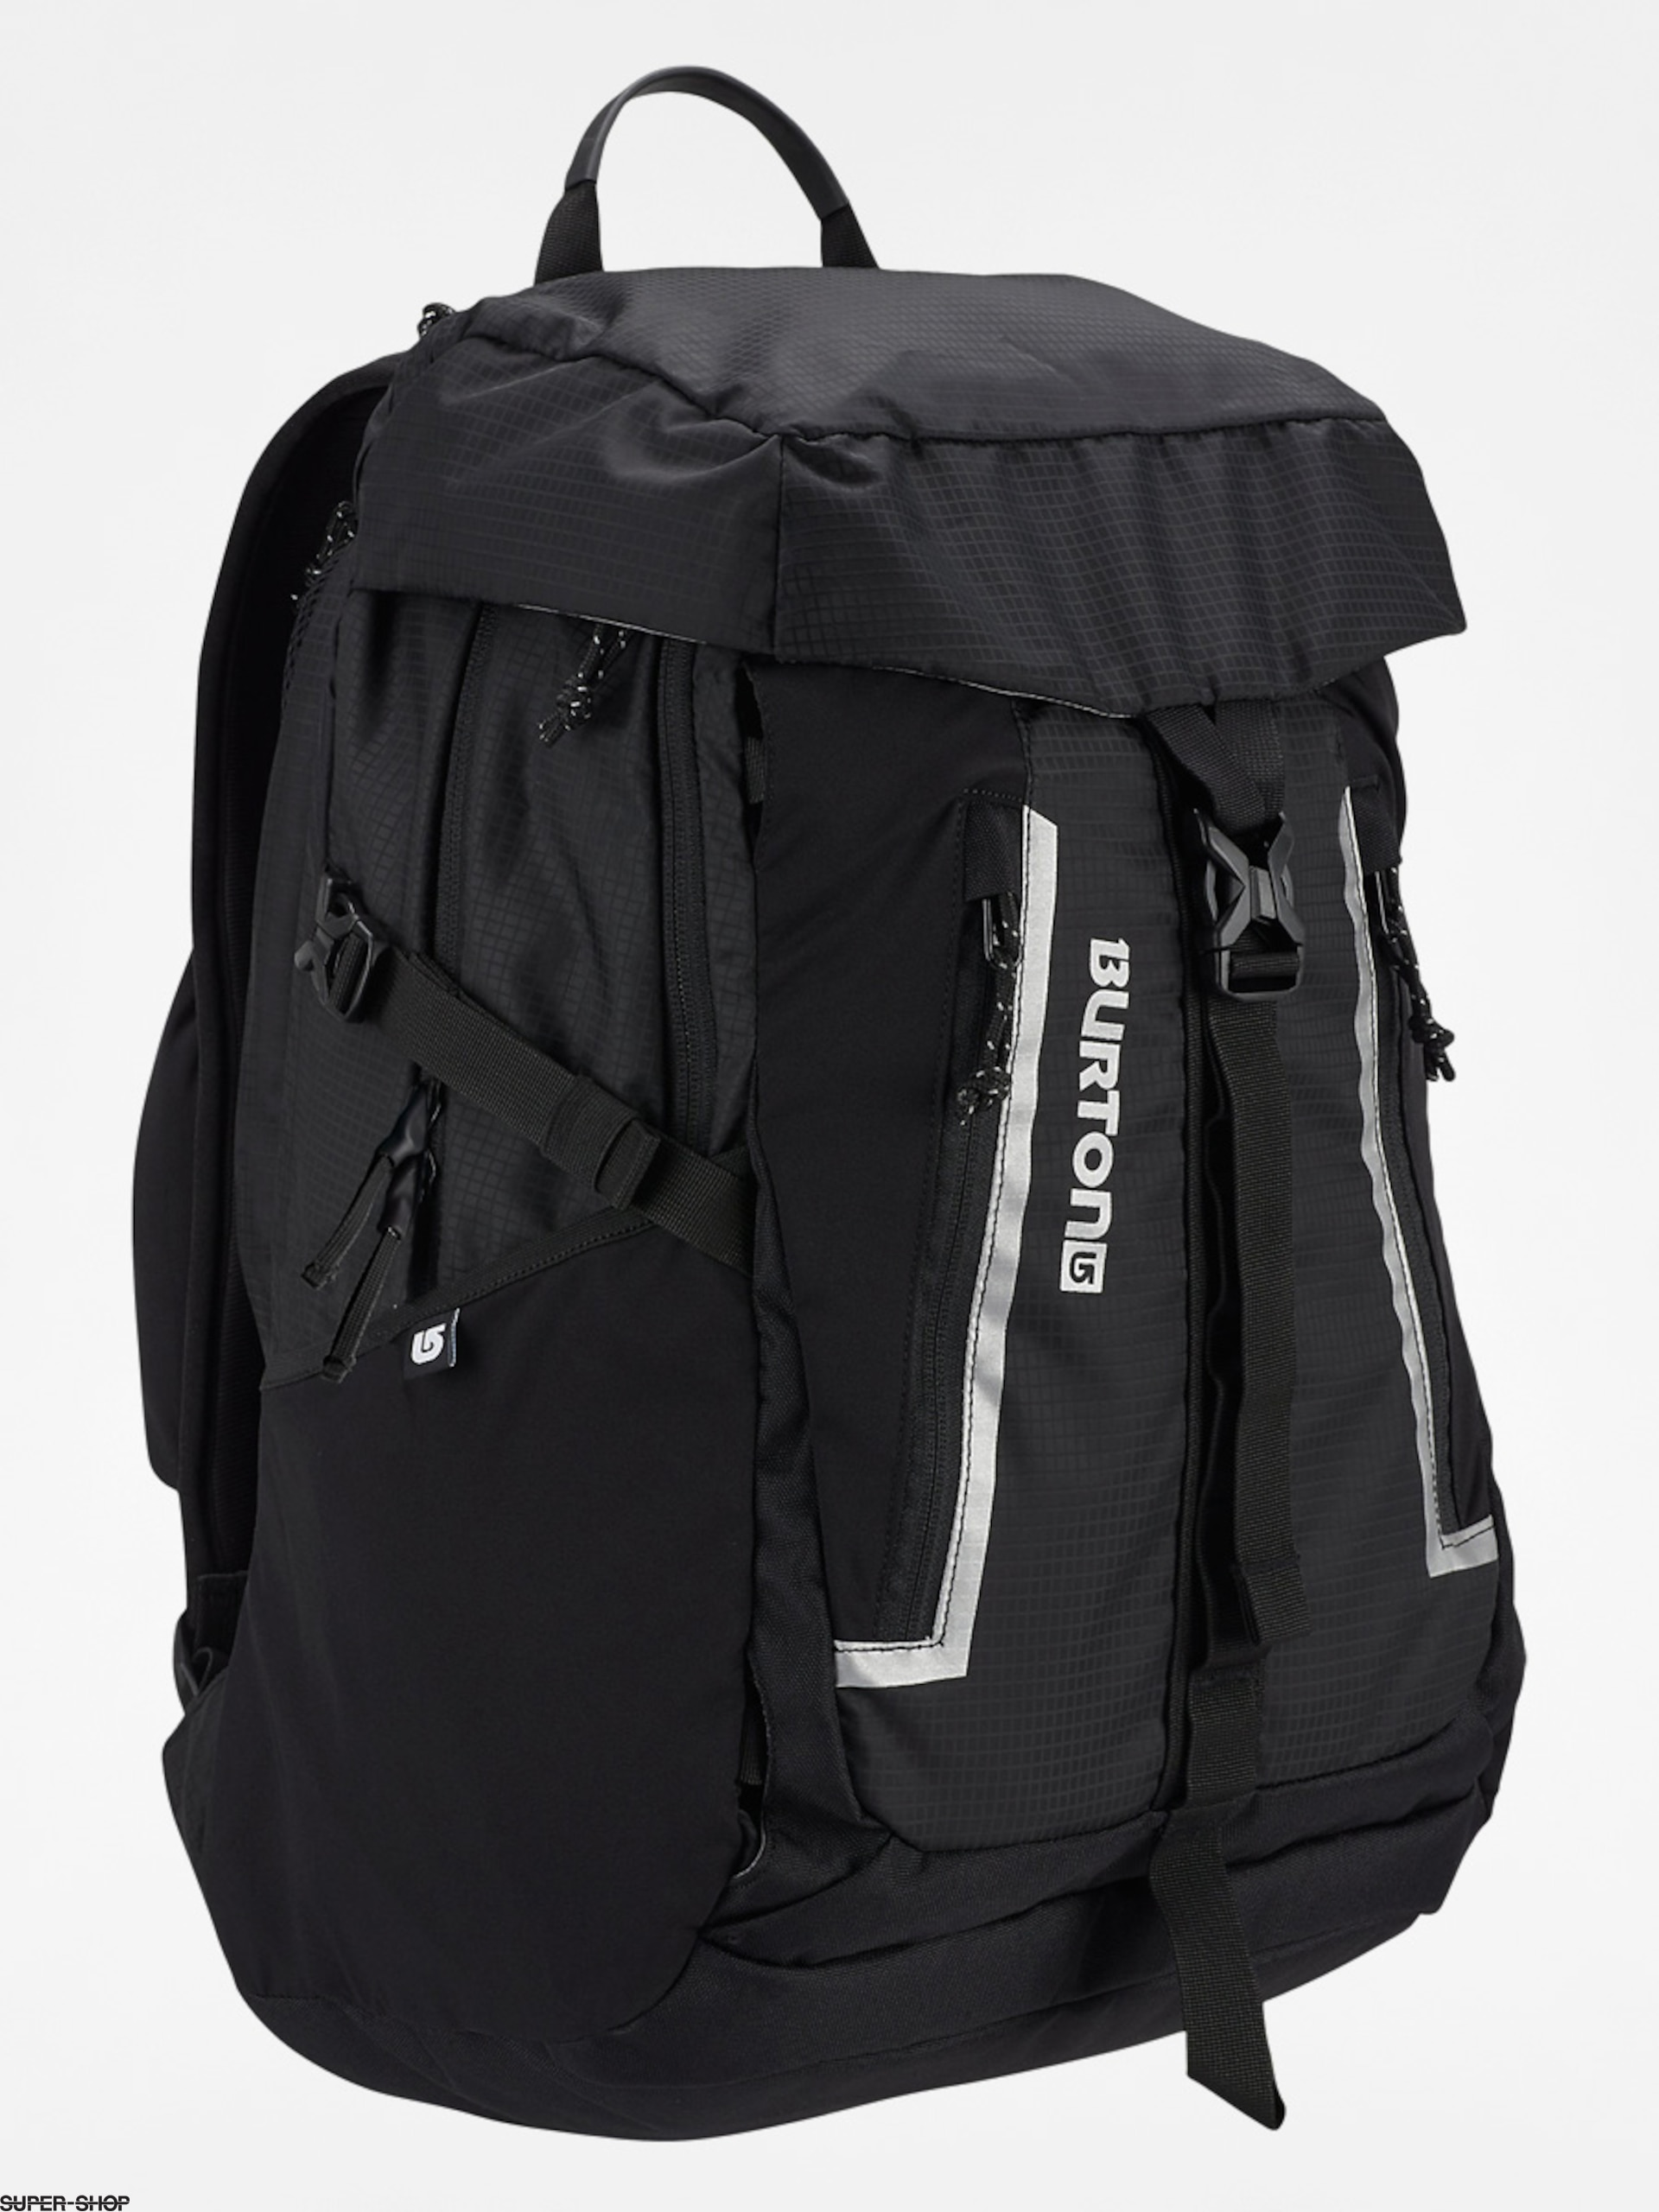 Burton Backpack Dayhiker Pinacle (true black ripstop)